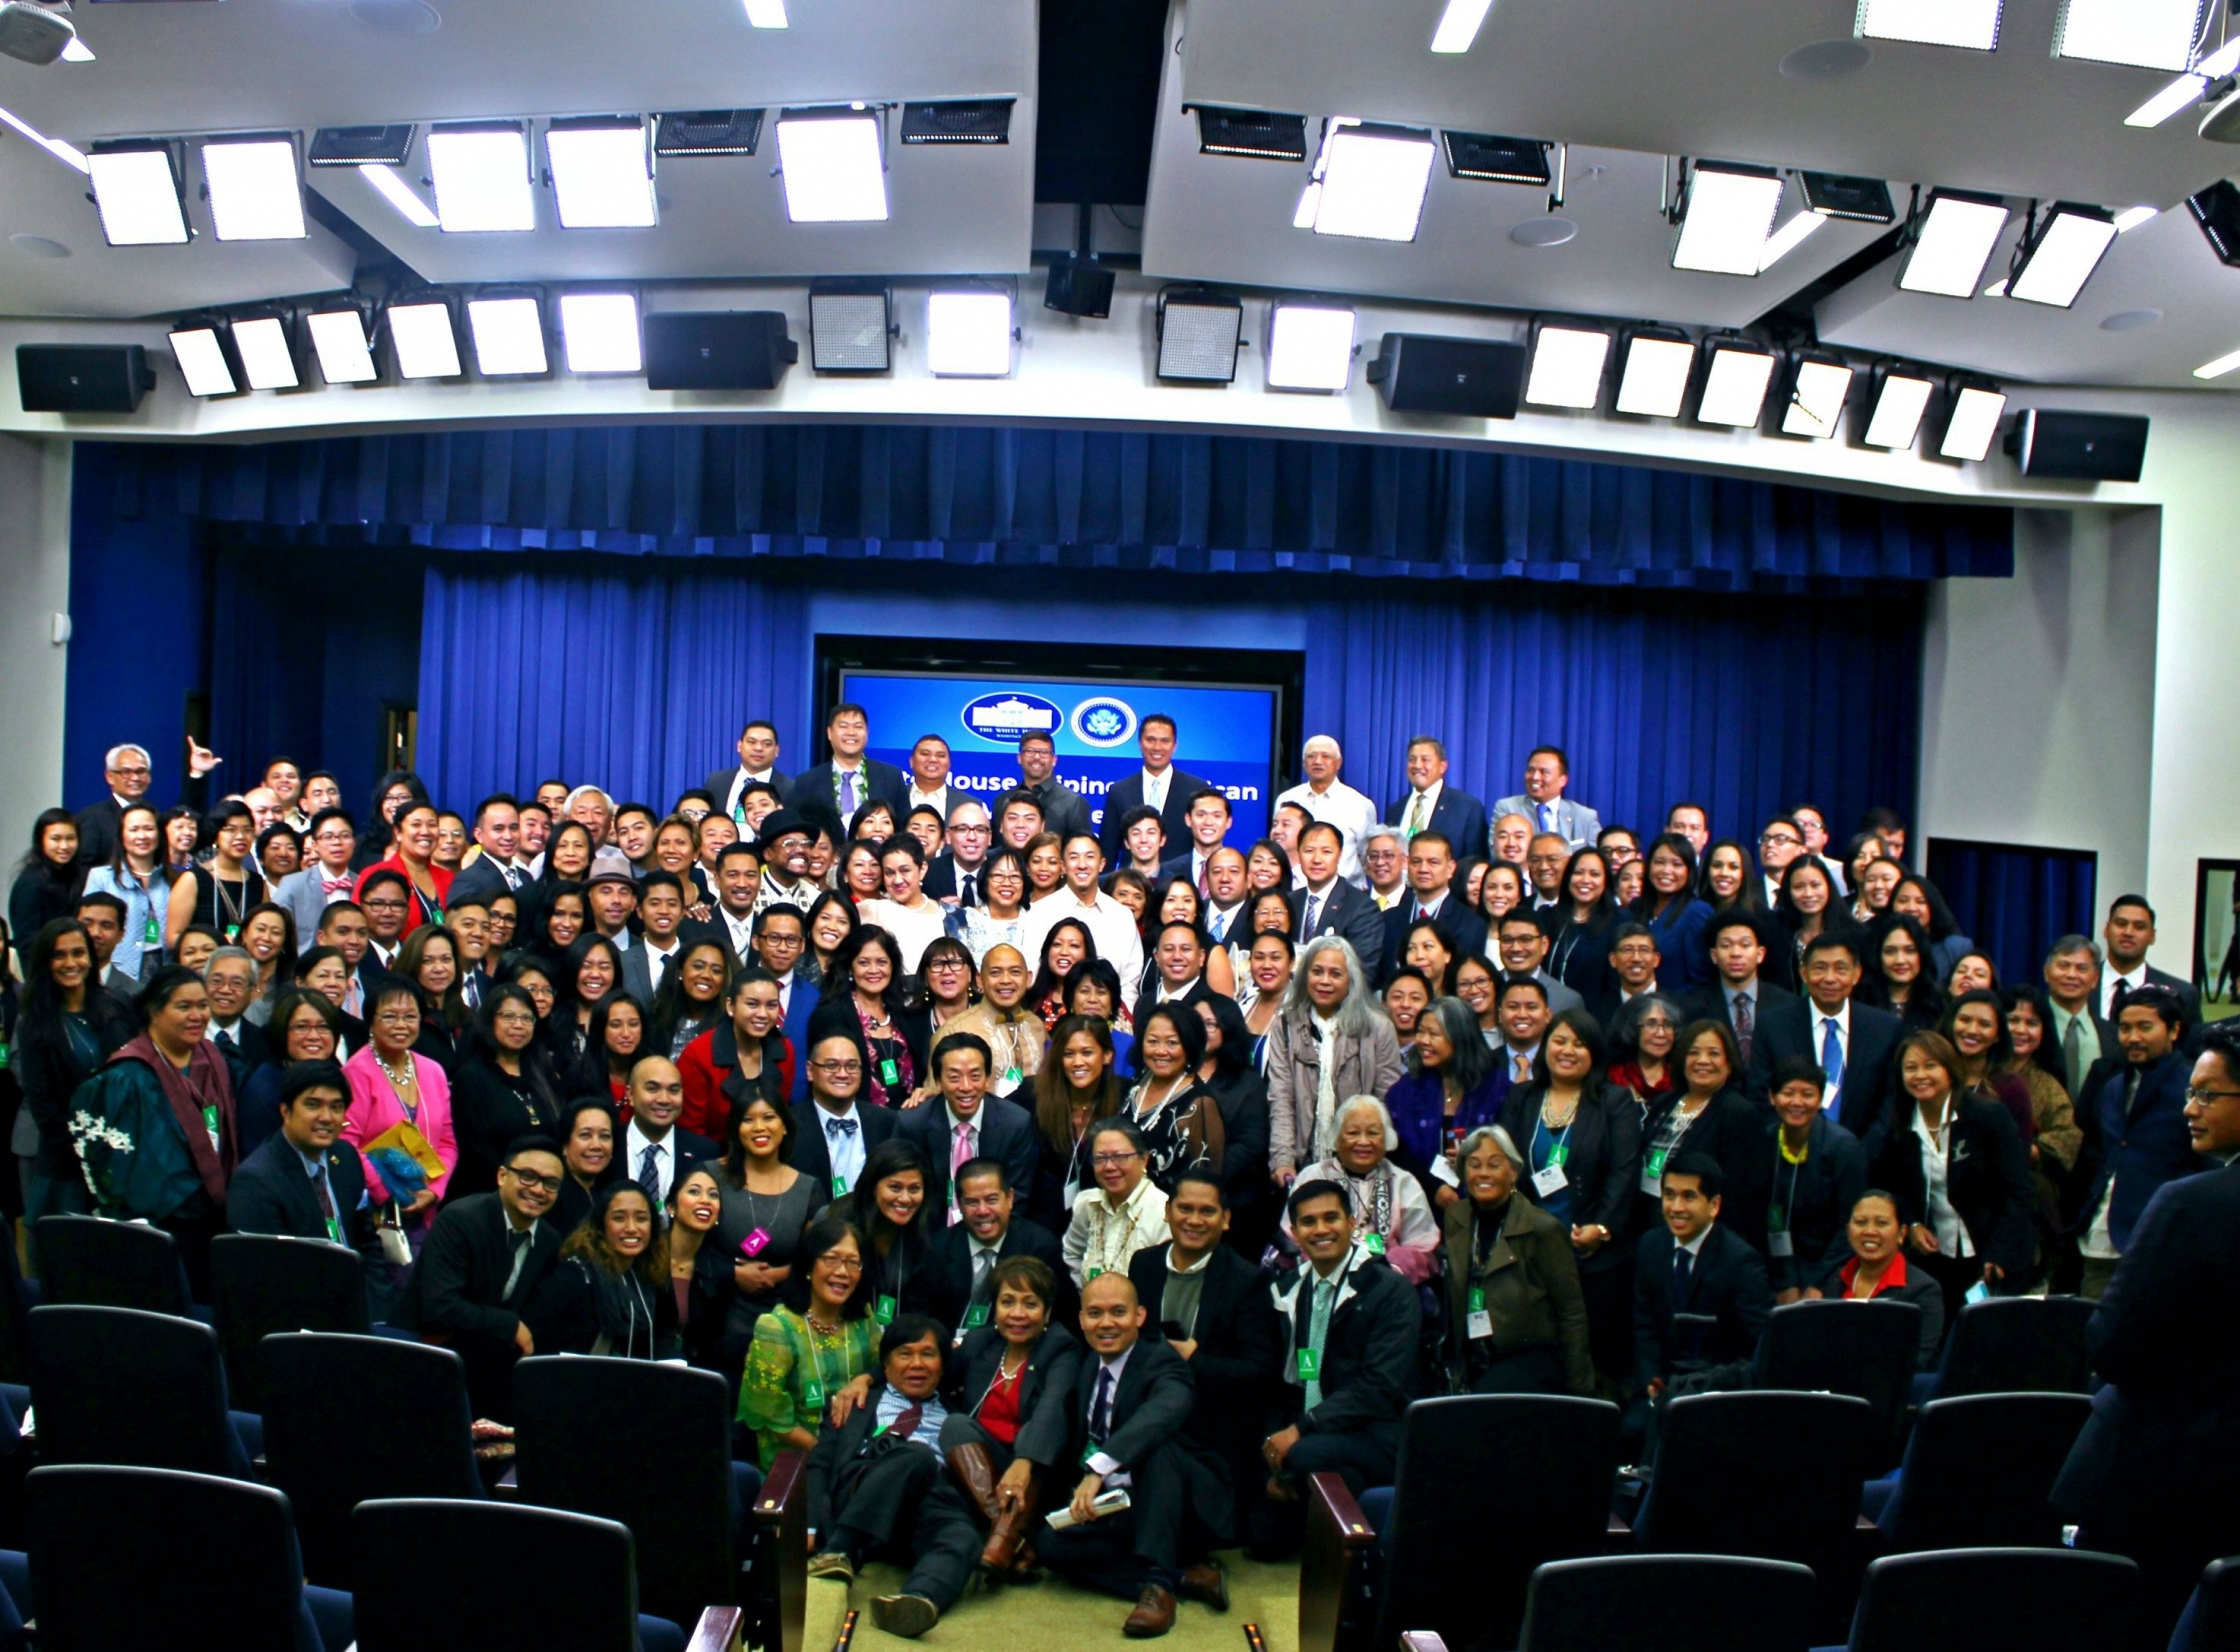 175 Filipino American leaders from across the country gathered for the first-ever White House Celebration of Filipino American History Month, October 2, 2015.  Photo by Bessie Chan, White House Initiative on Asian Americans and Pacific Islanders.